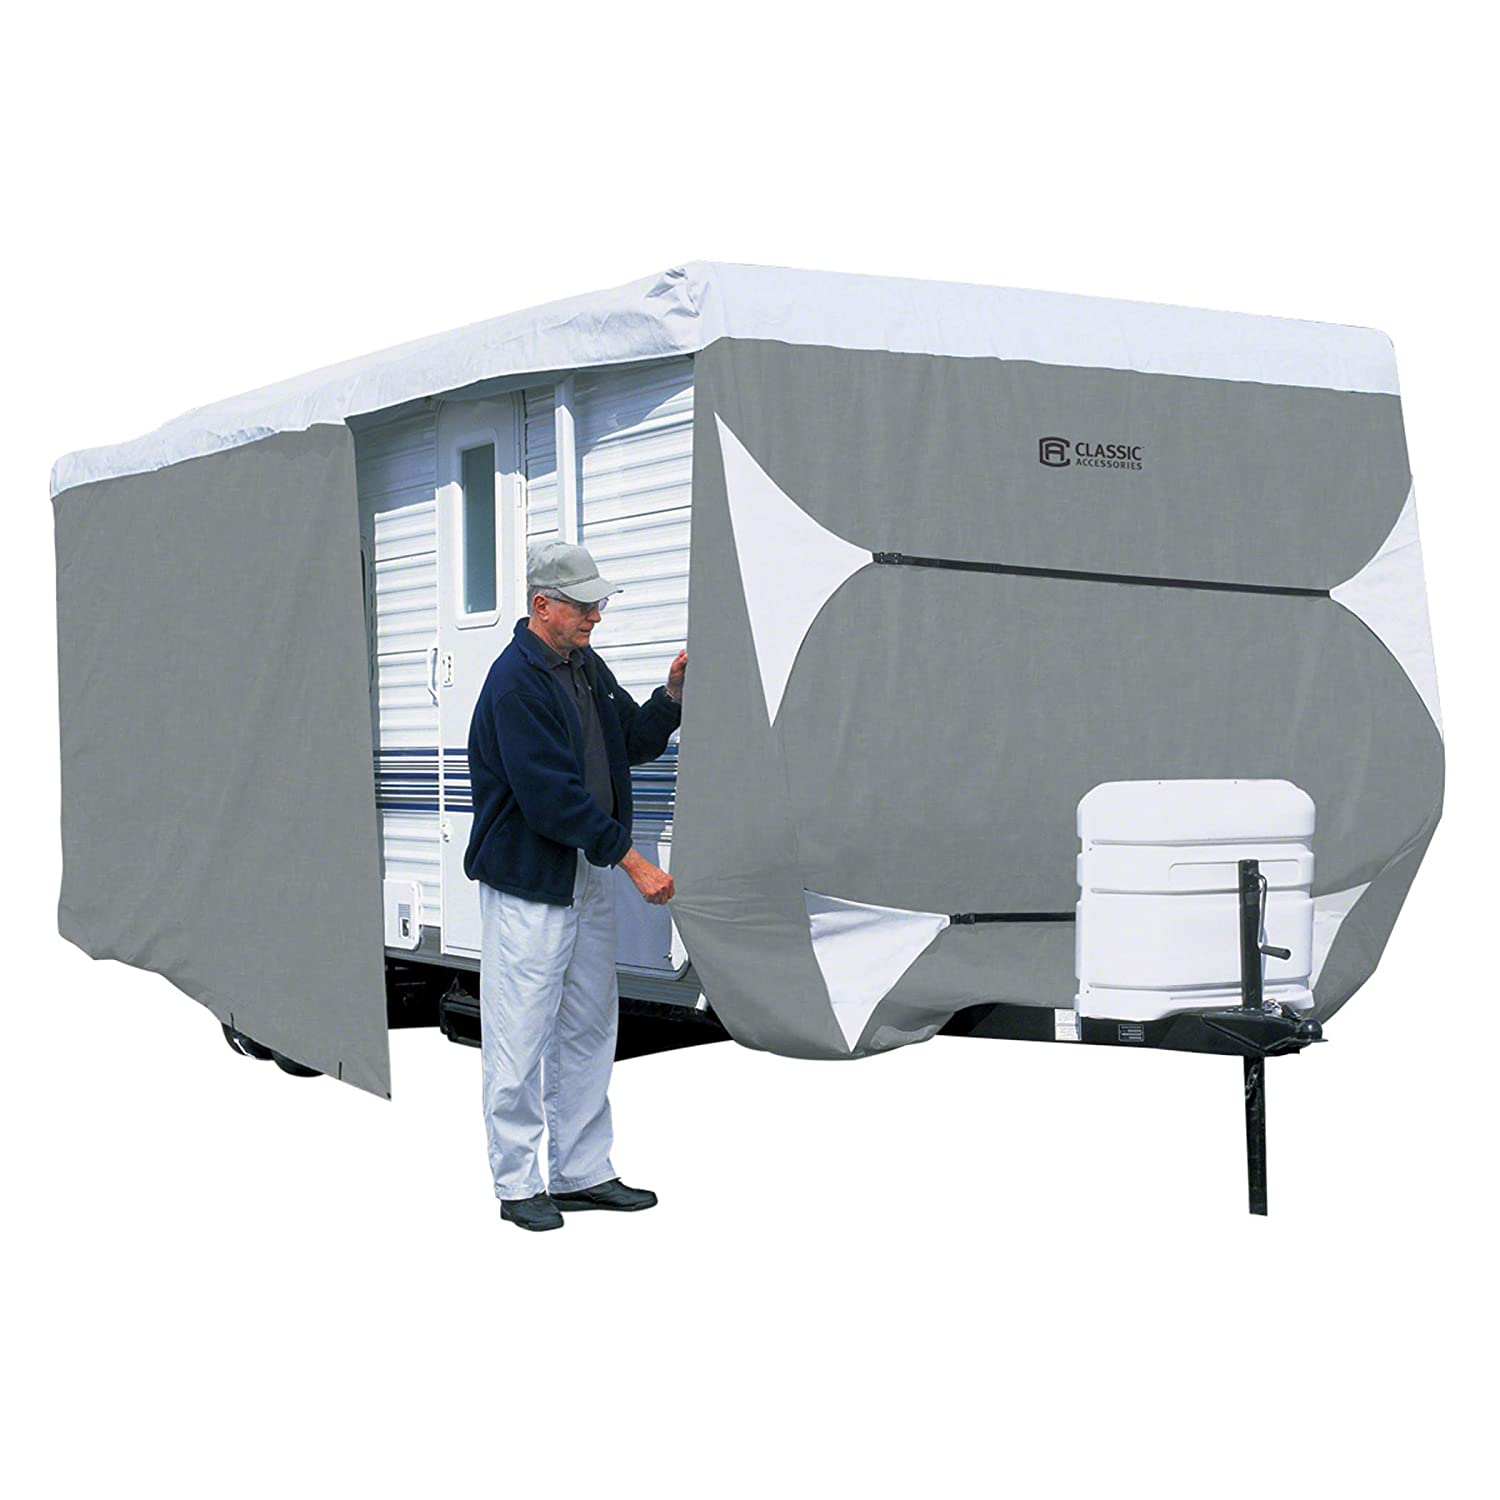 Classic Accessories 80-351-303101-RT Overdrive PolyPro 3 Deluxe Travel Trailer Cover Fits 15-18